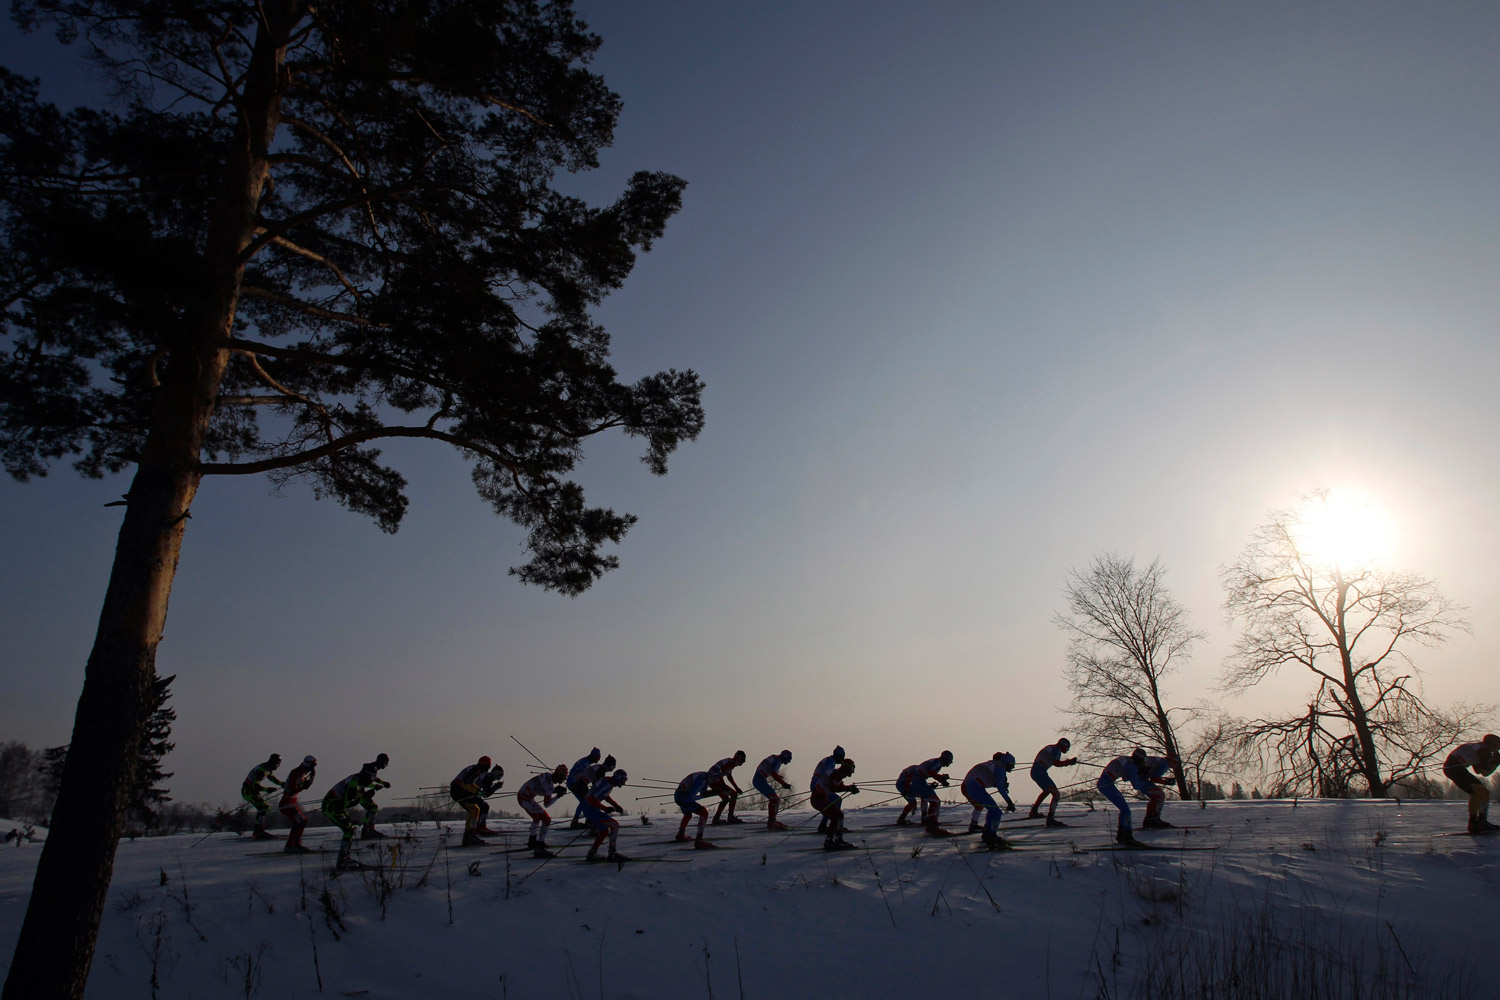 February 4, 2012. Skiers make their way during the men's cross-country skiing World Cup 15-km Free Mass Start in Rybinsk, Russia.